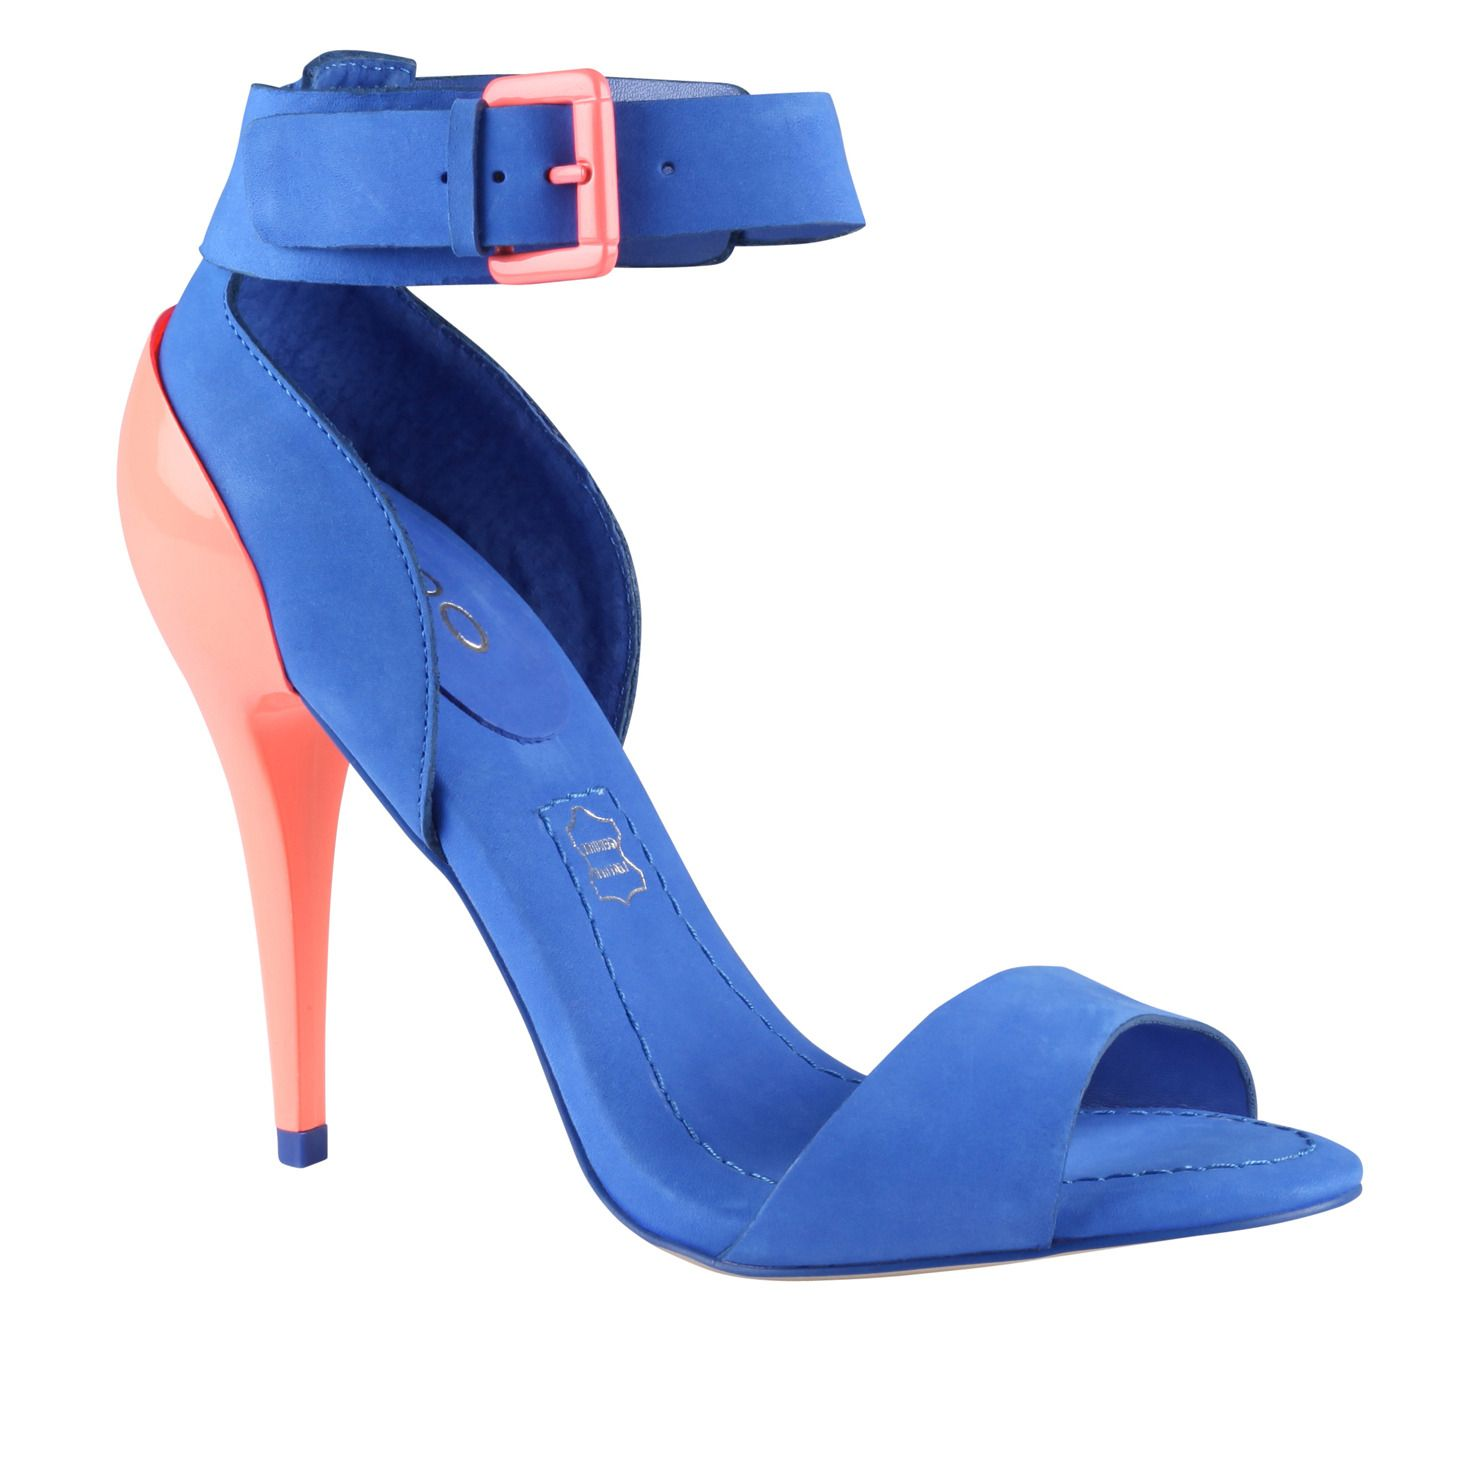 MEDICI - womens high heels sandals for sale at ALDO Shoes. | My ...